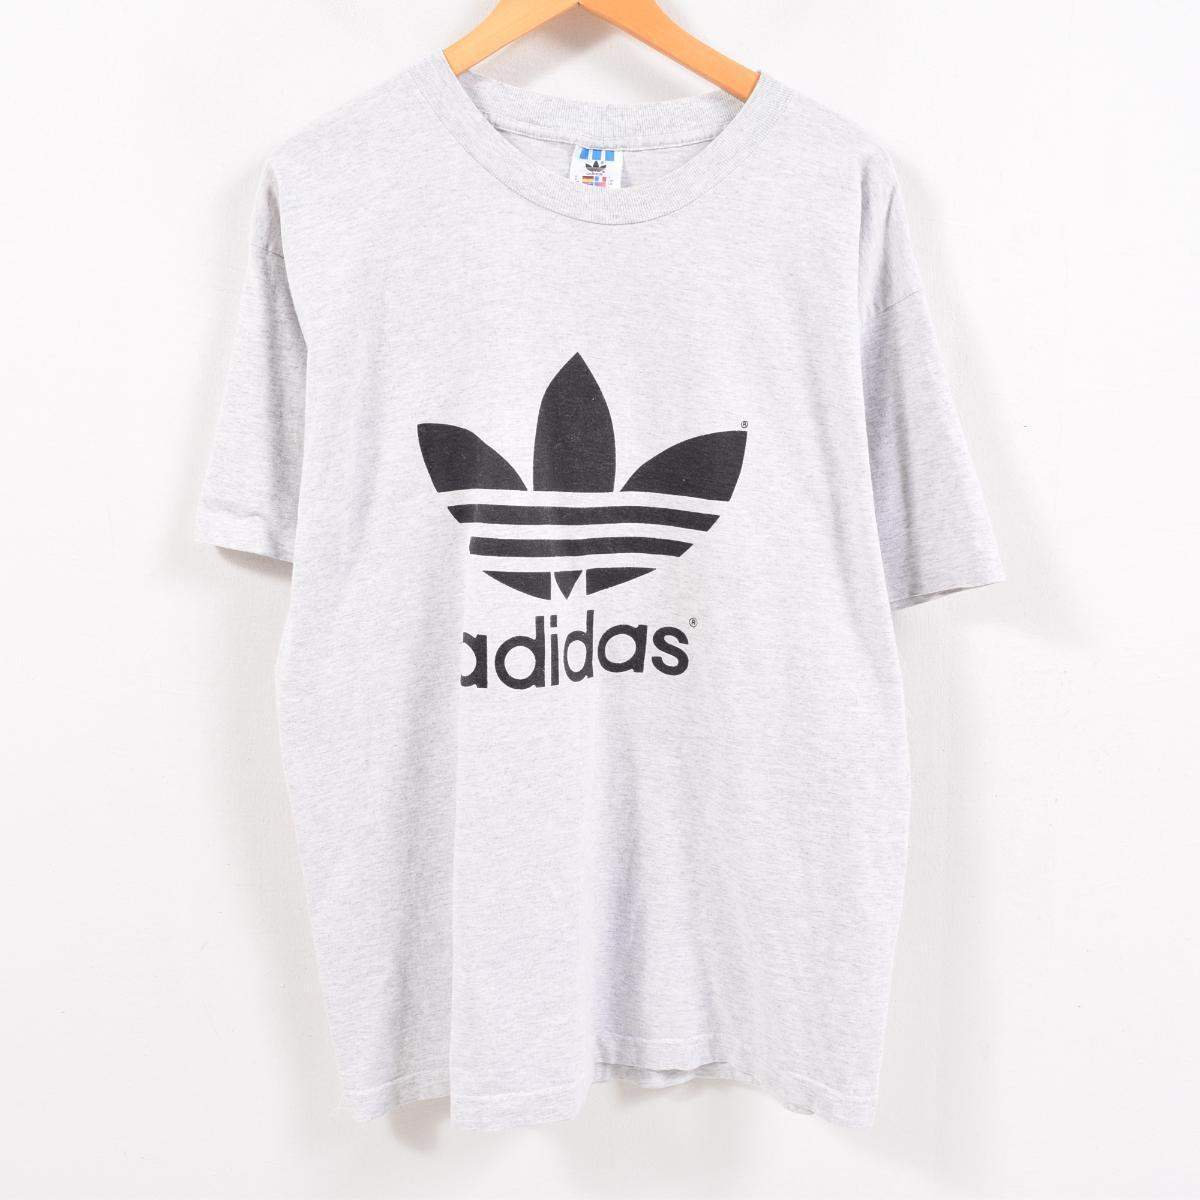 ad8ab263e Men XL /wbc3957 in the 90s made in Adidas adidas both sides print decalogo  big logo logo T-shirt USA